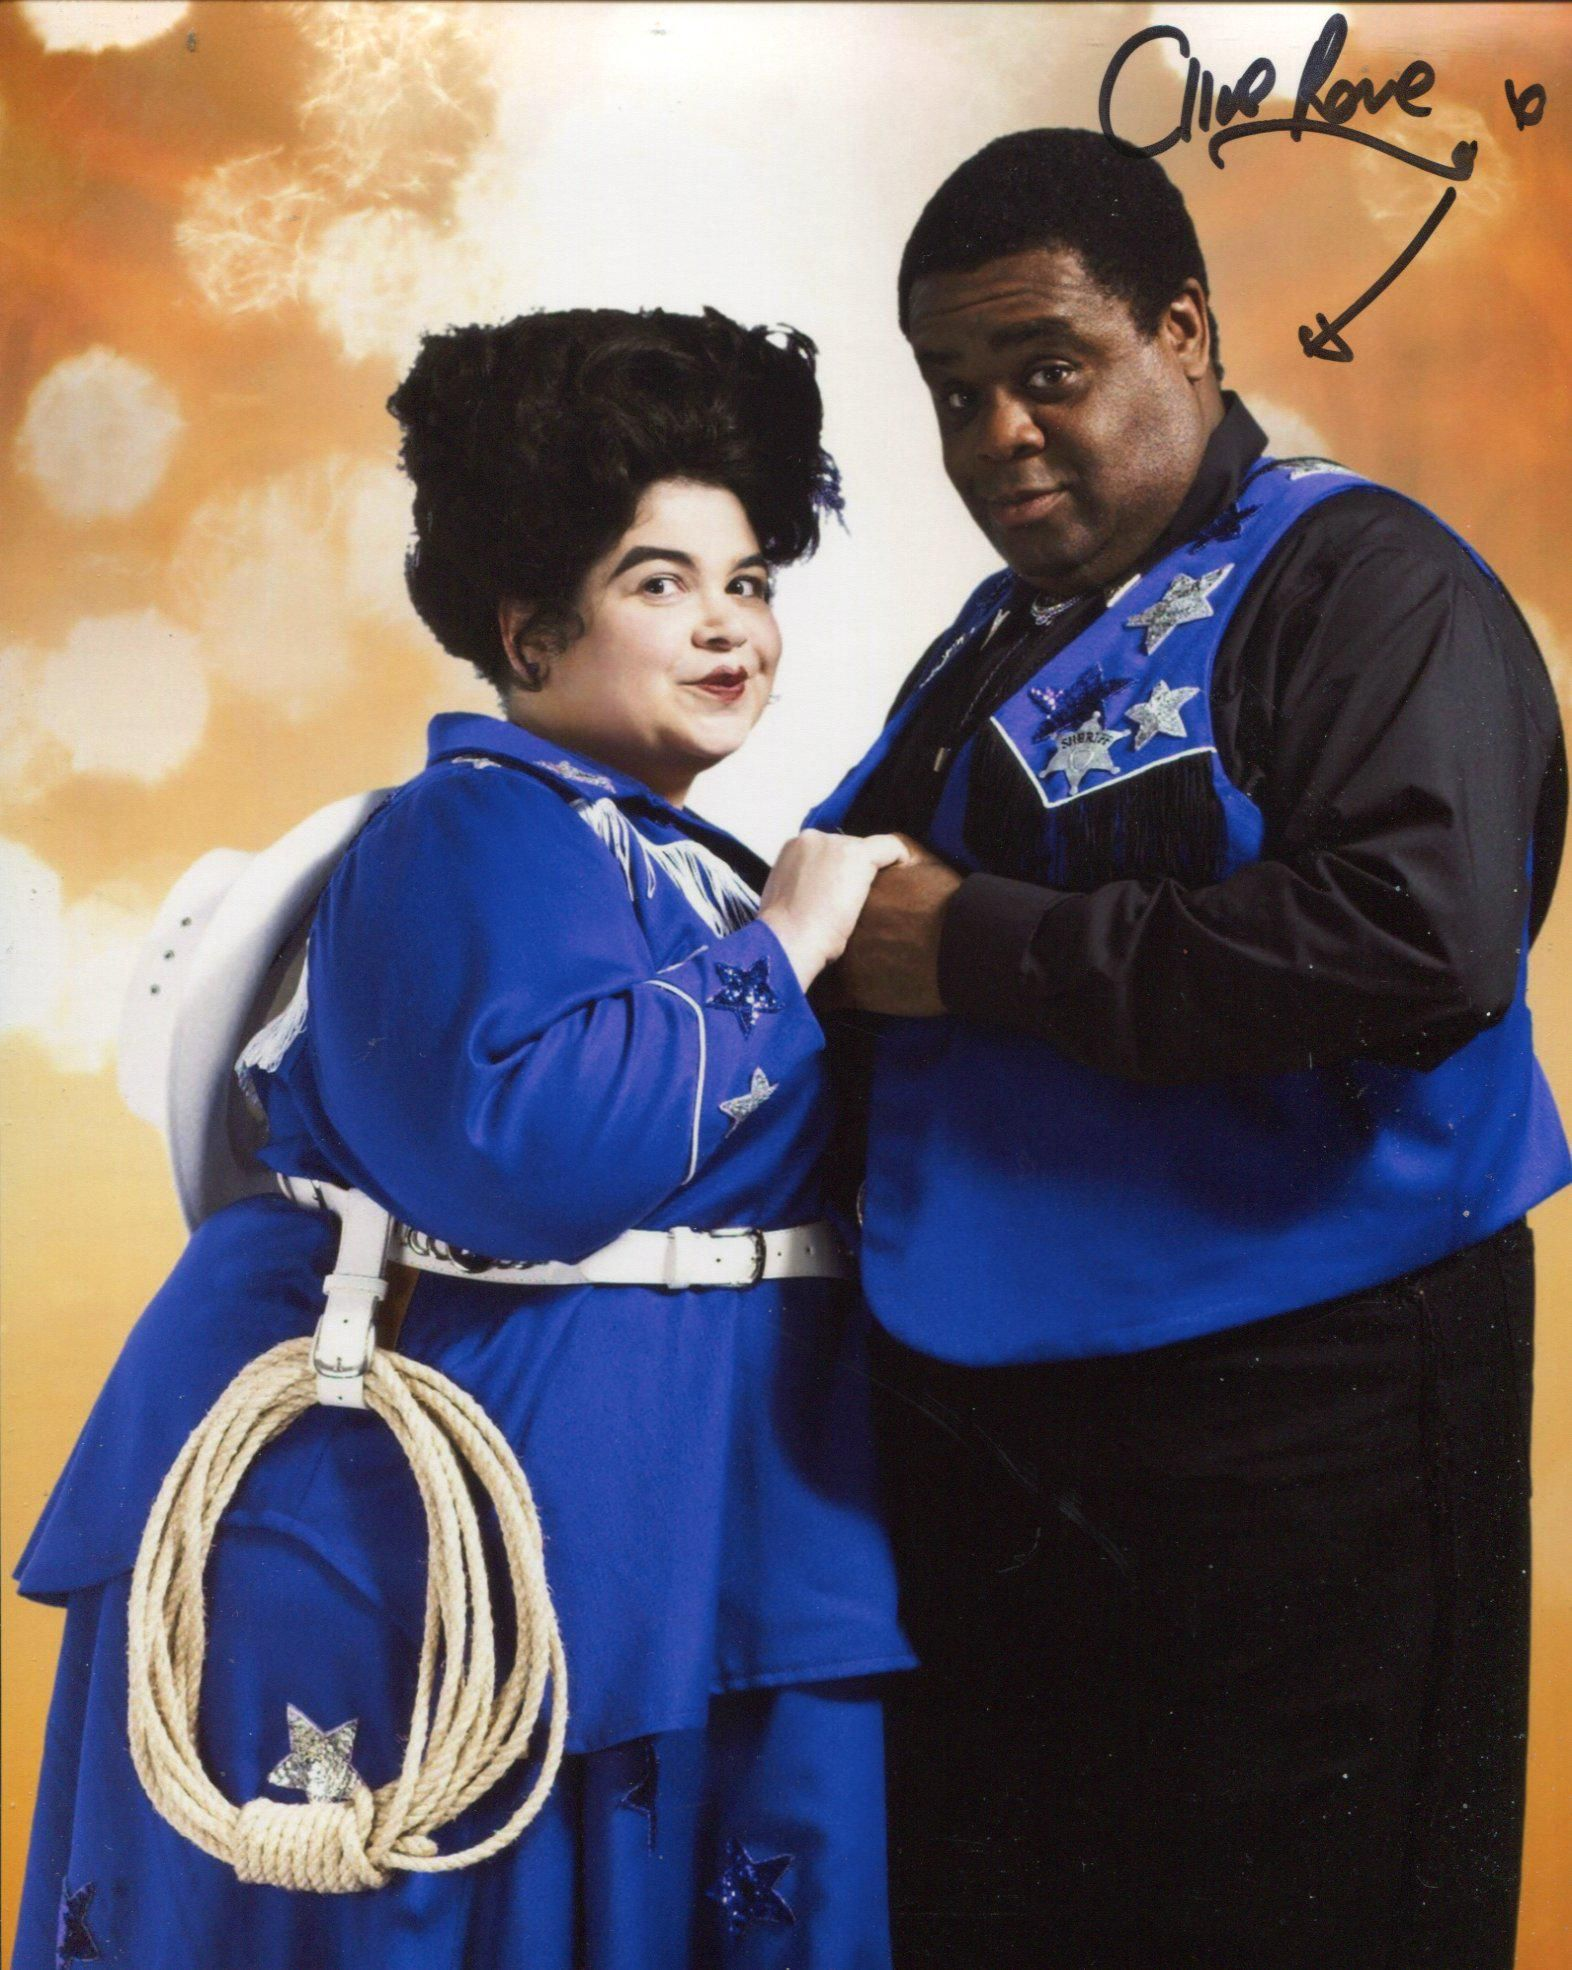 Doctor Who 8x10 photo signed by actor Clive Rowe as